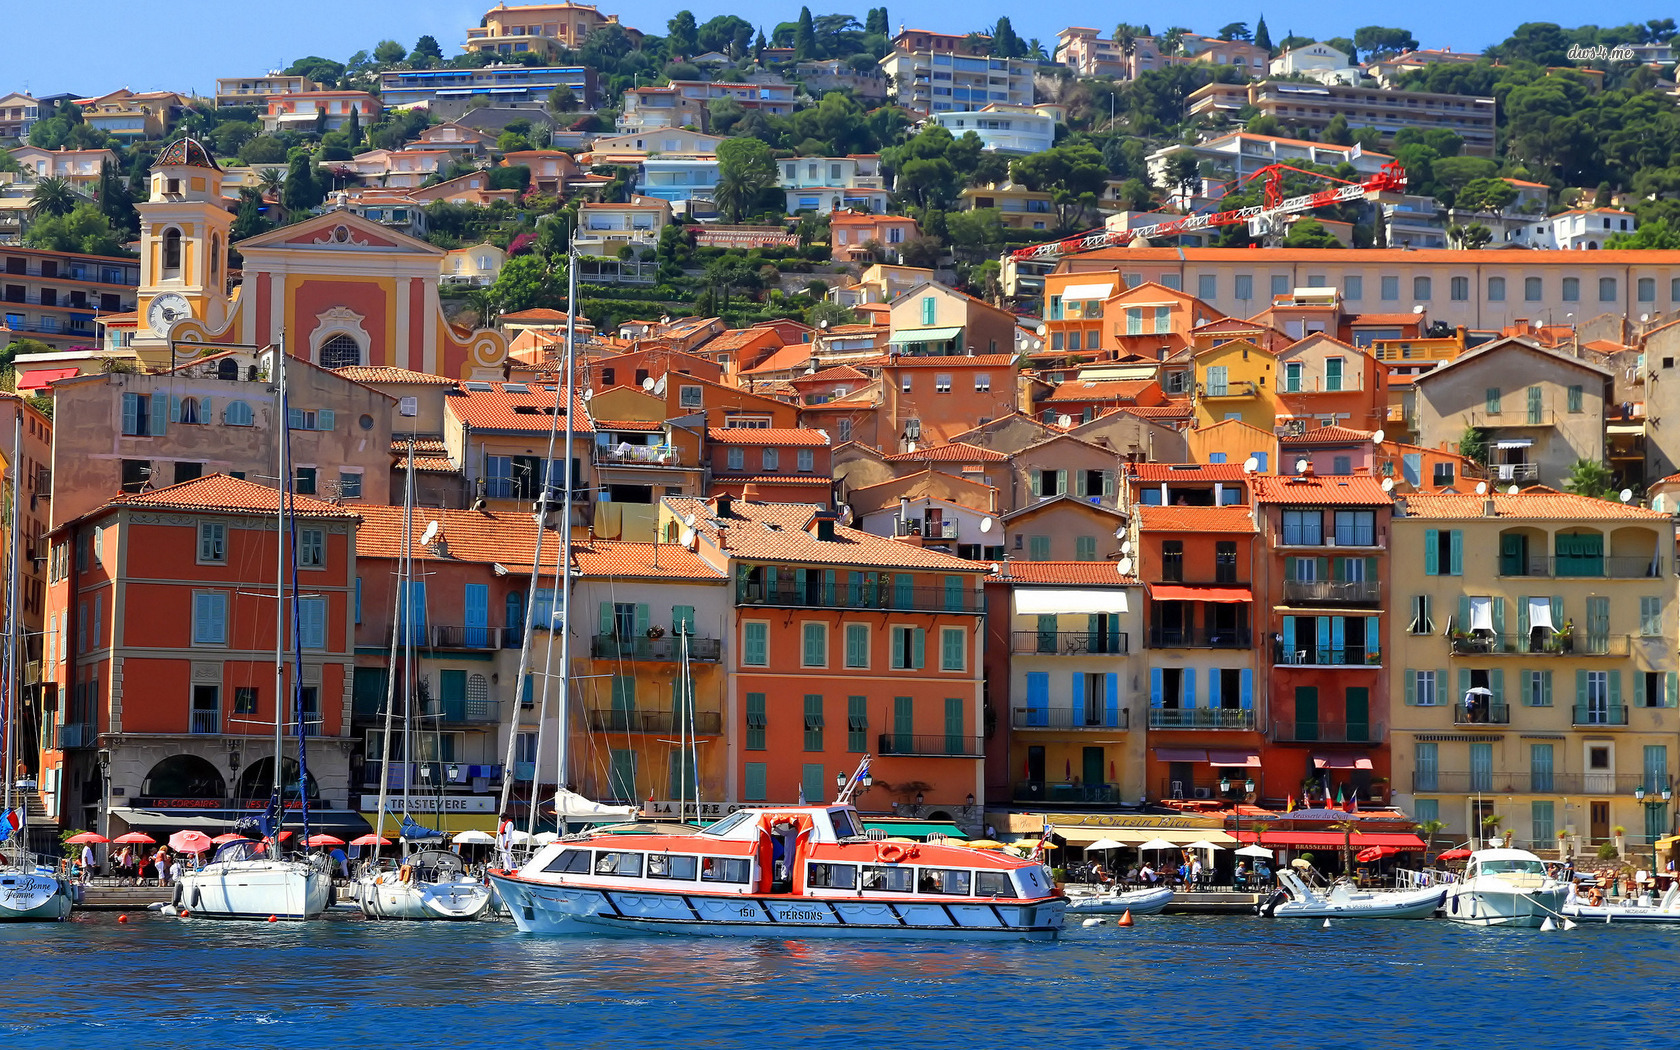 Property investment on French Riviera back in fashion